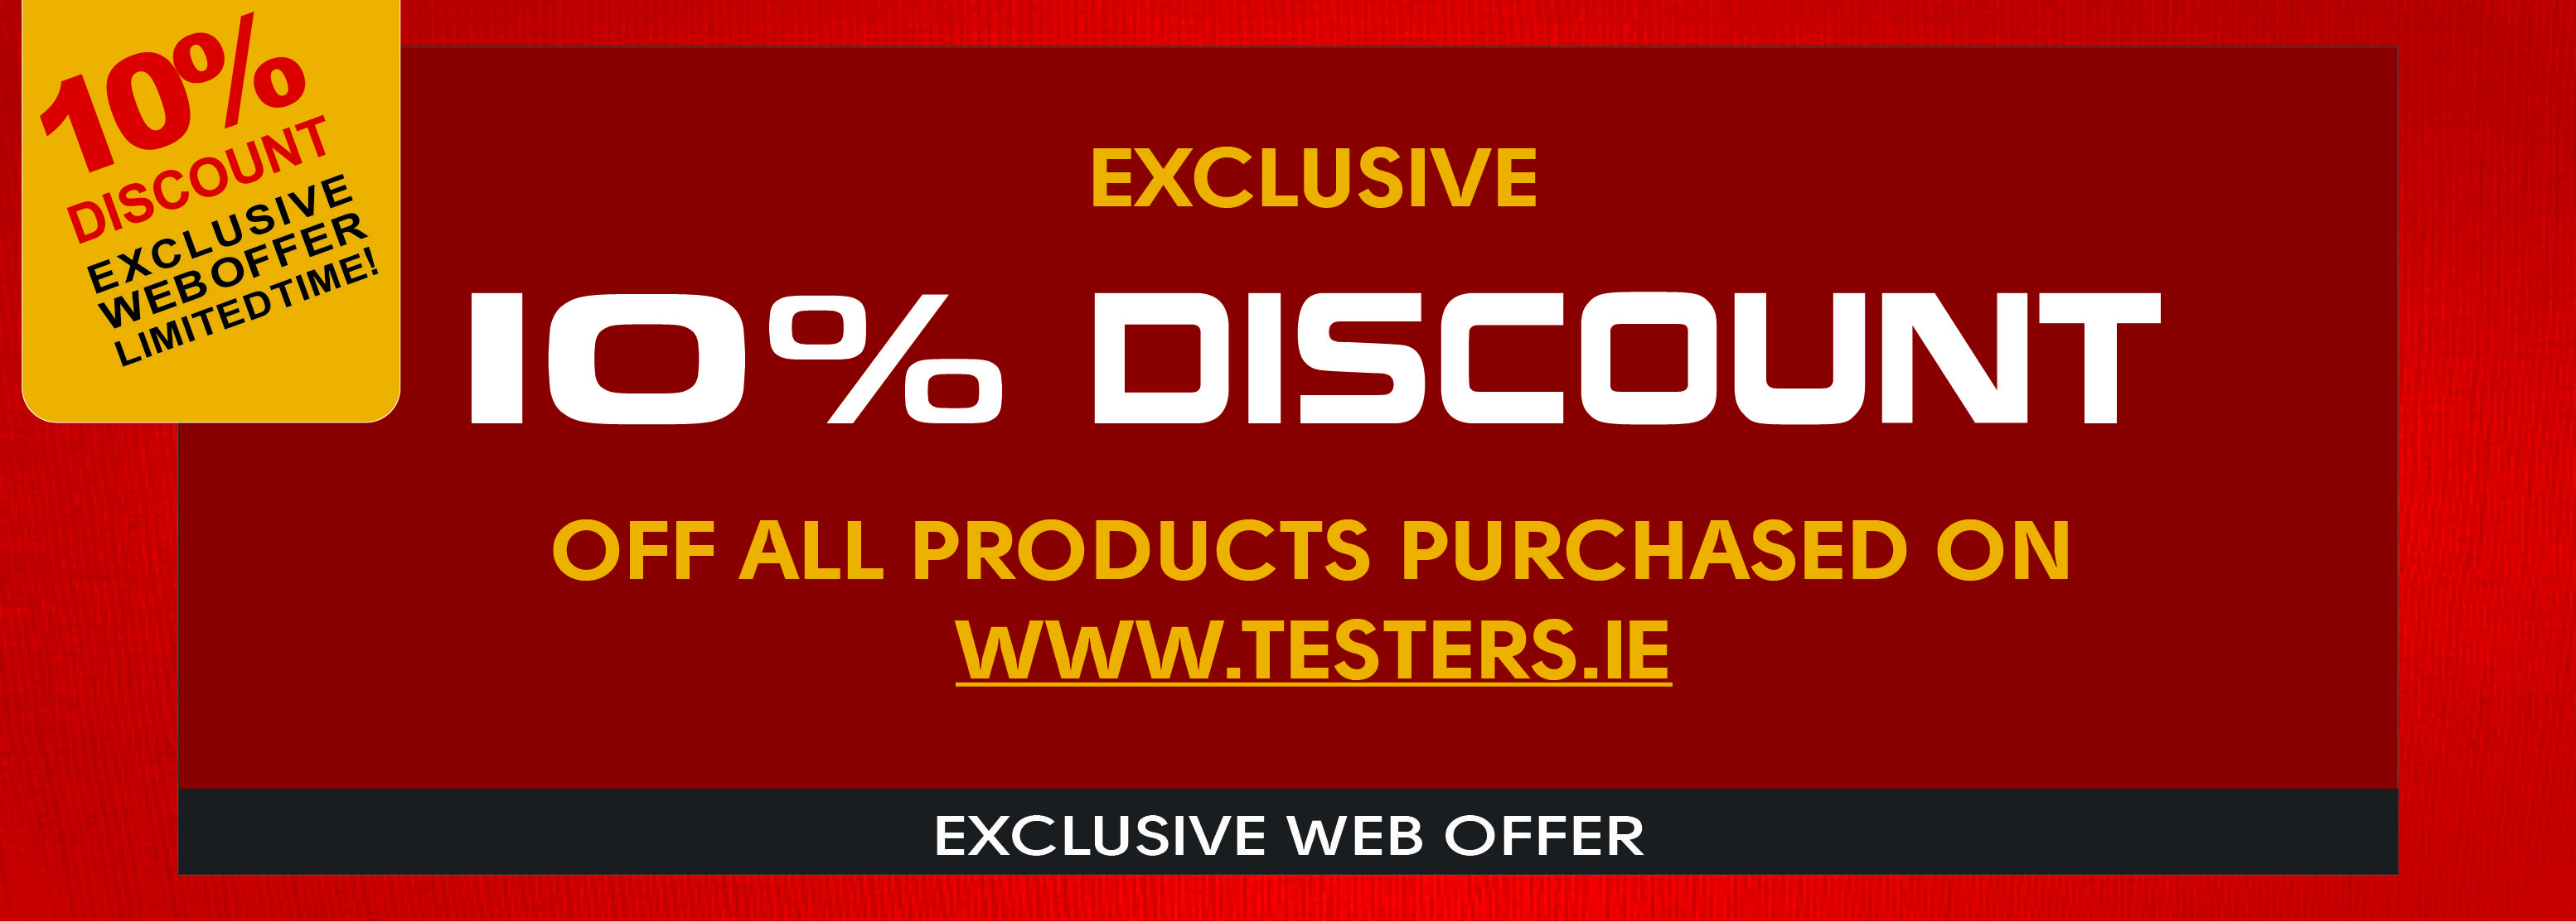 15% Discount Product Promotion